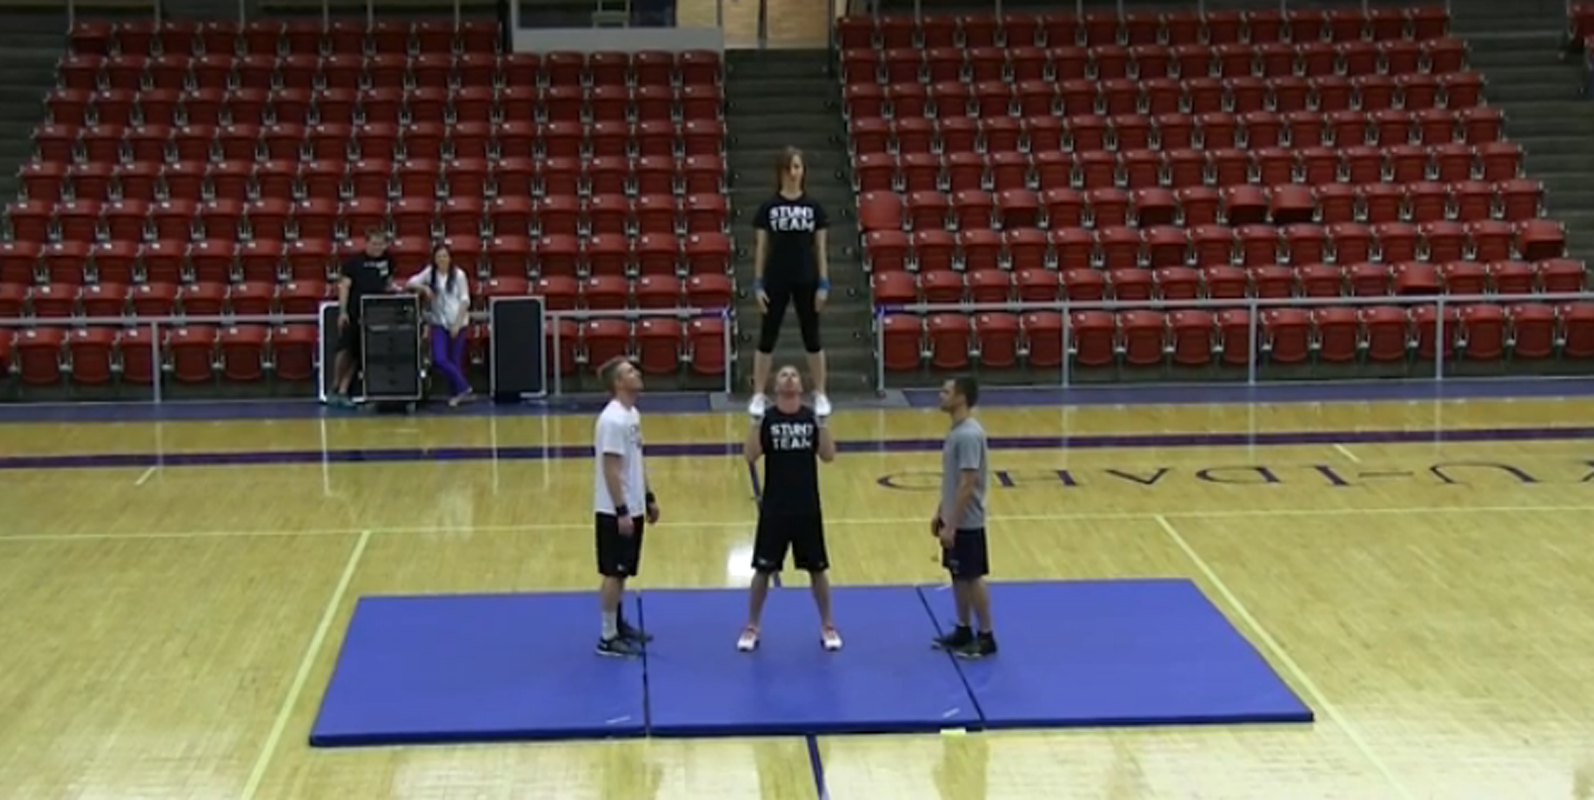 Competitive dance and Stunt teams rock the Hart Gym